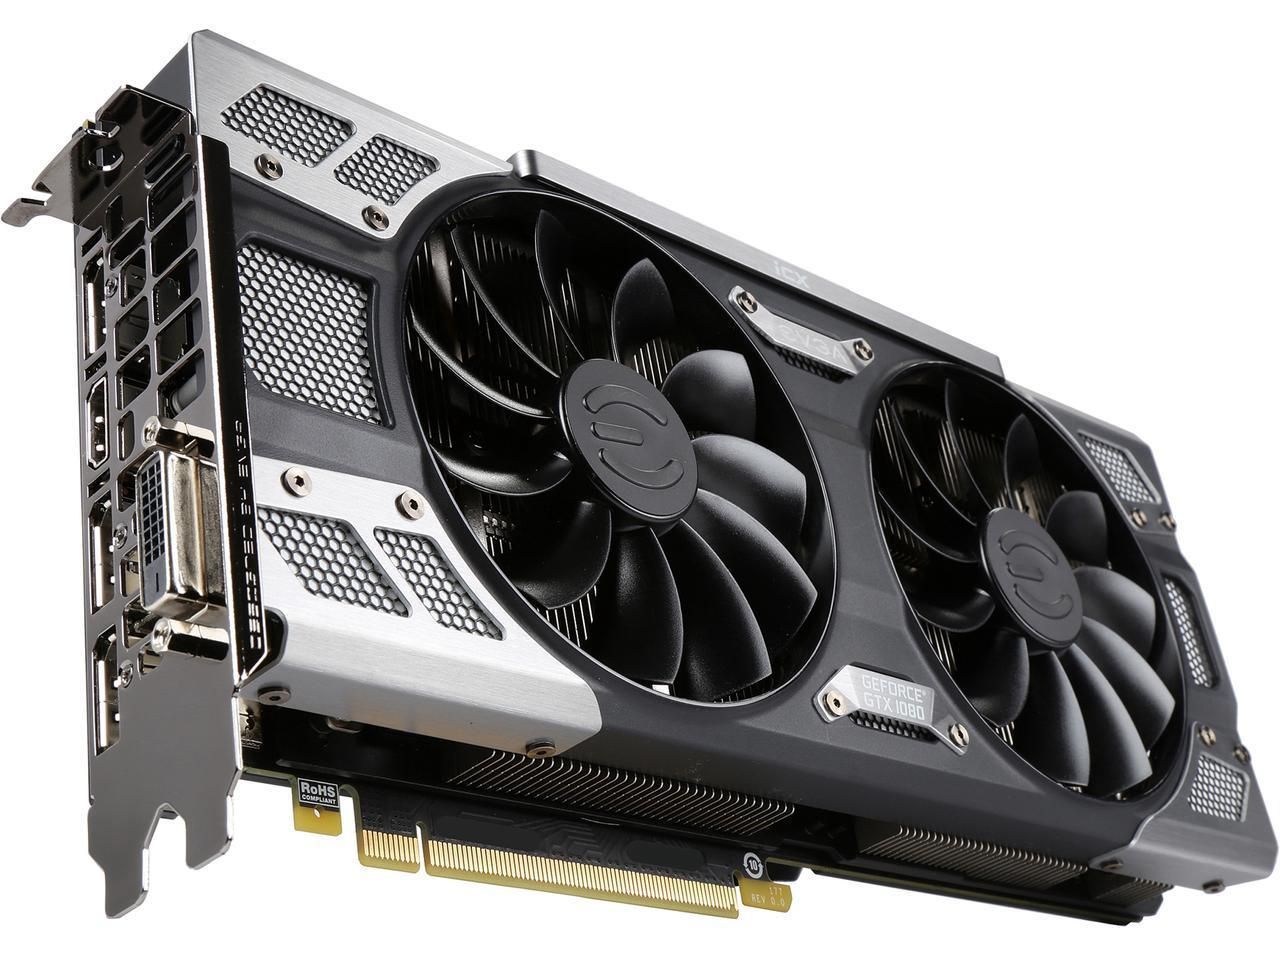 Evga Geforce Gtx 1080 Ftw Gaming Acx 30 08g P4 6286 Kr 8gb Gddr5x Already In The Fan Base Pdf Mod Note How To Include Pictures Rgb Led 10cm 10 Power Phases Double Bios Dx12 Osd Support Pxoc